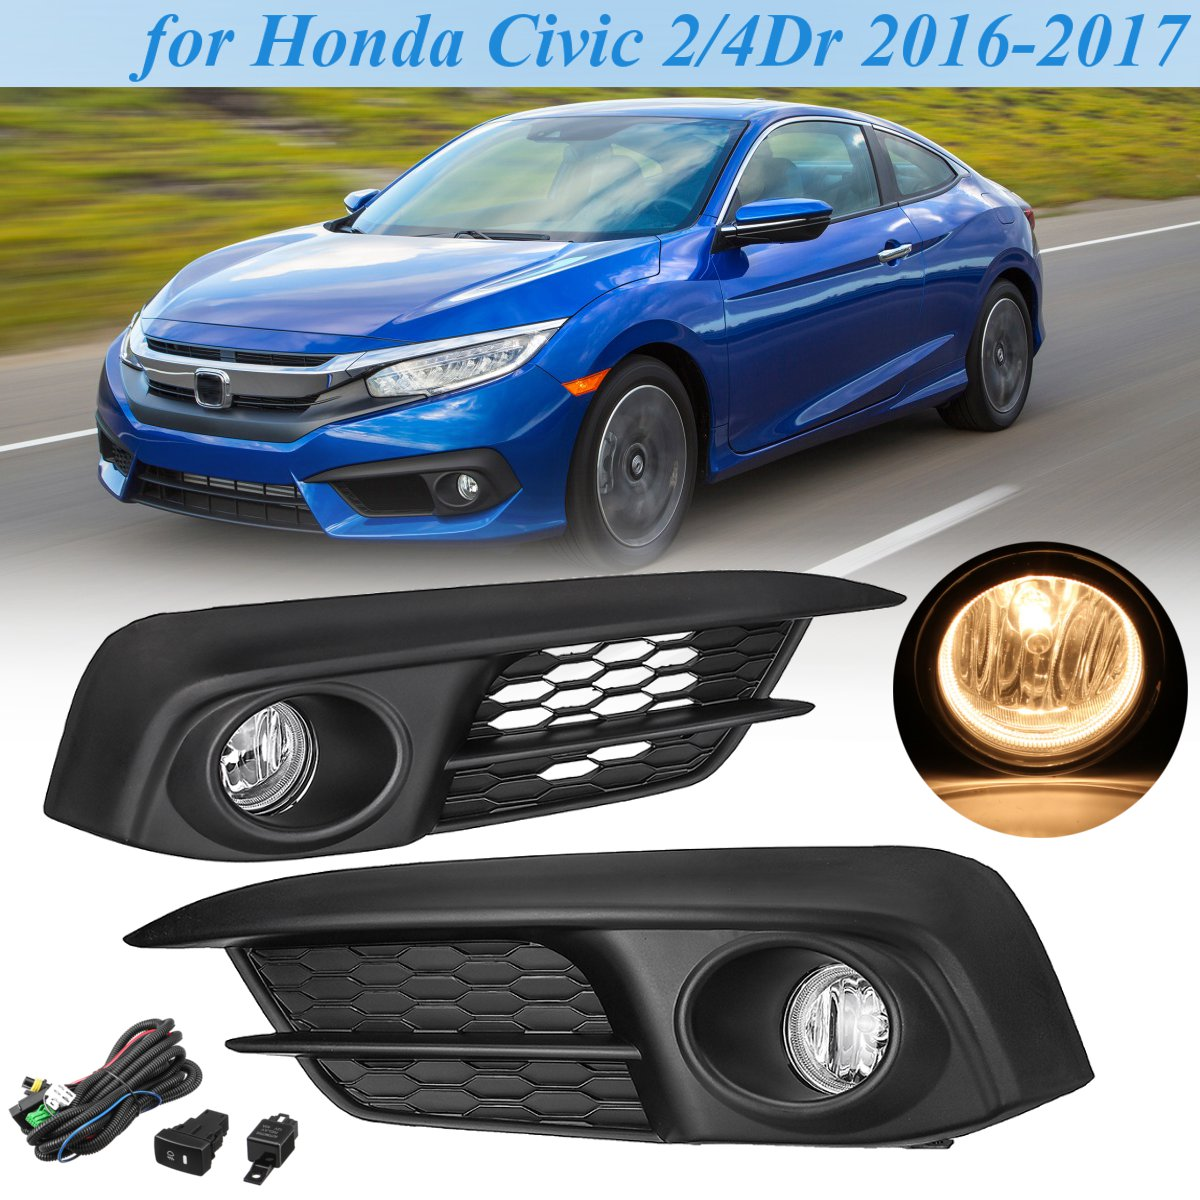 1 Pair Bumper Light Sub-Assy Clear+Wiring Switch+Bulbs Front Bumper Fog Light Lamp Front for Honda for Civic 2016 2017 front light